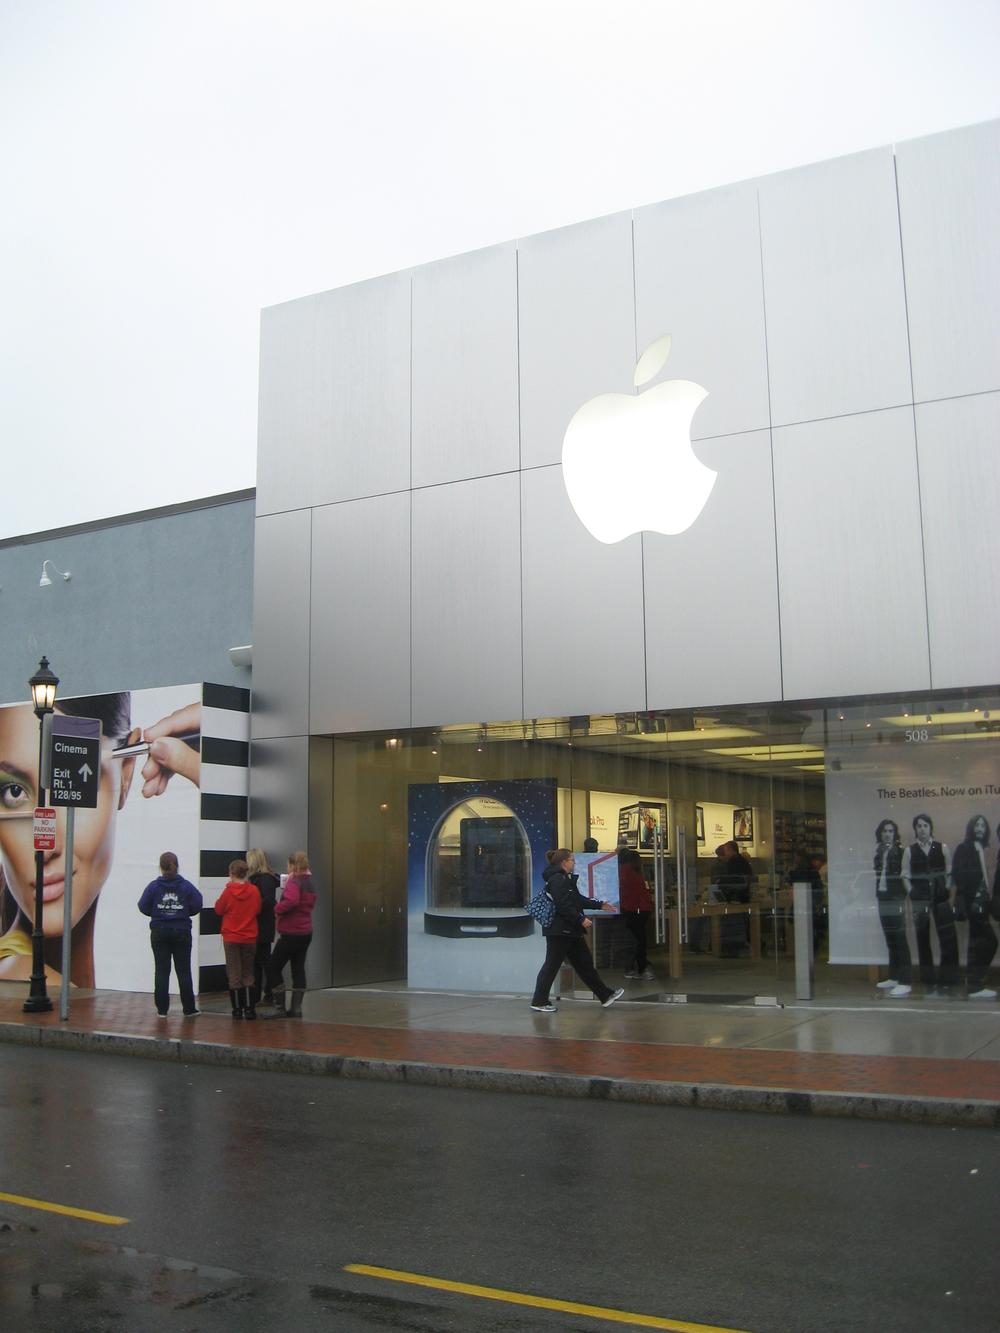 The rain limited crowds somewhat at the Apple Store at the new Dedham Mall, Legacy Place. (Curt Nickisch/WBUR)